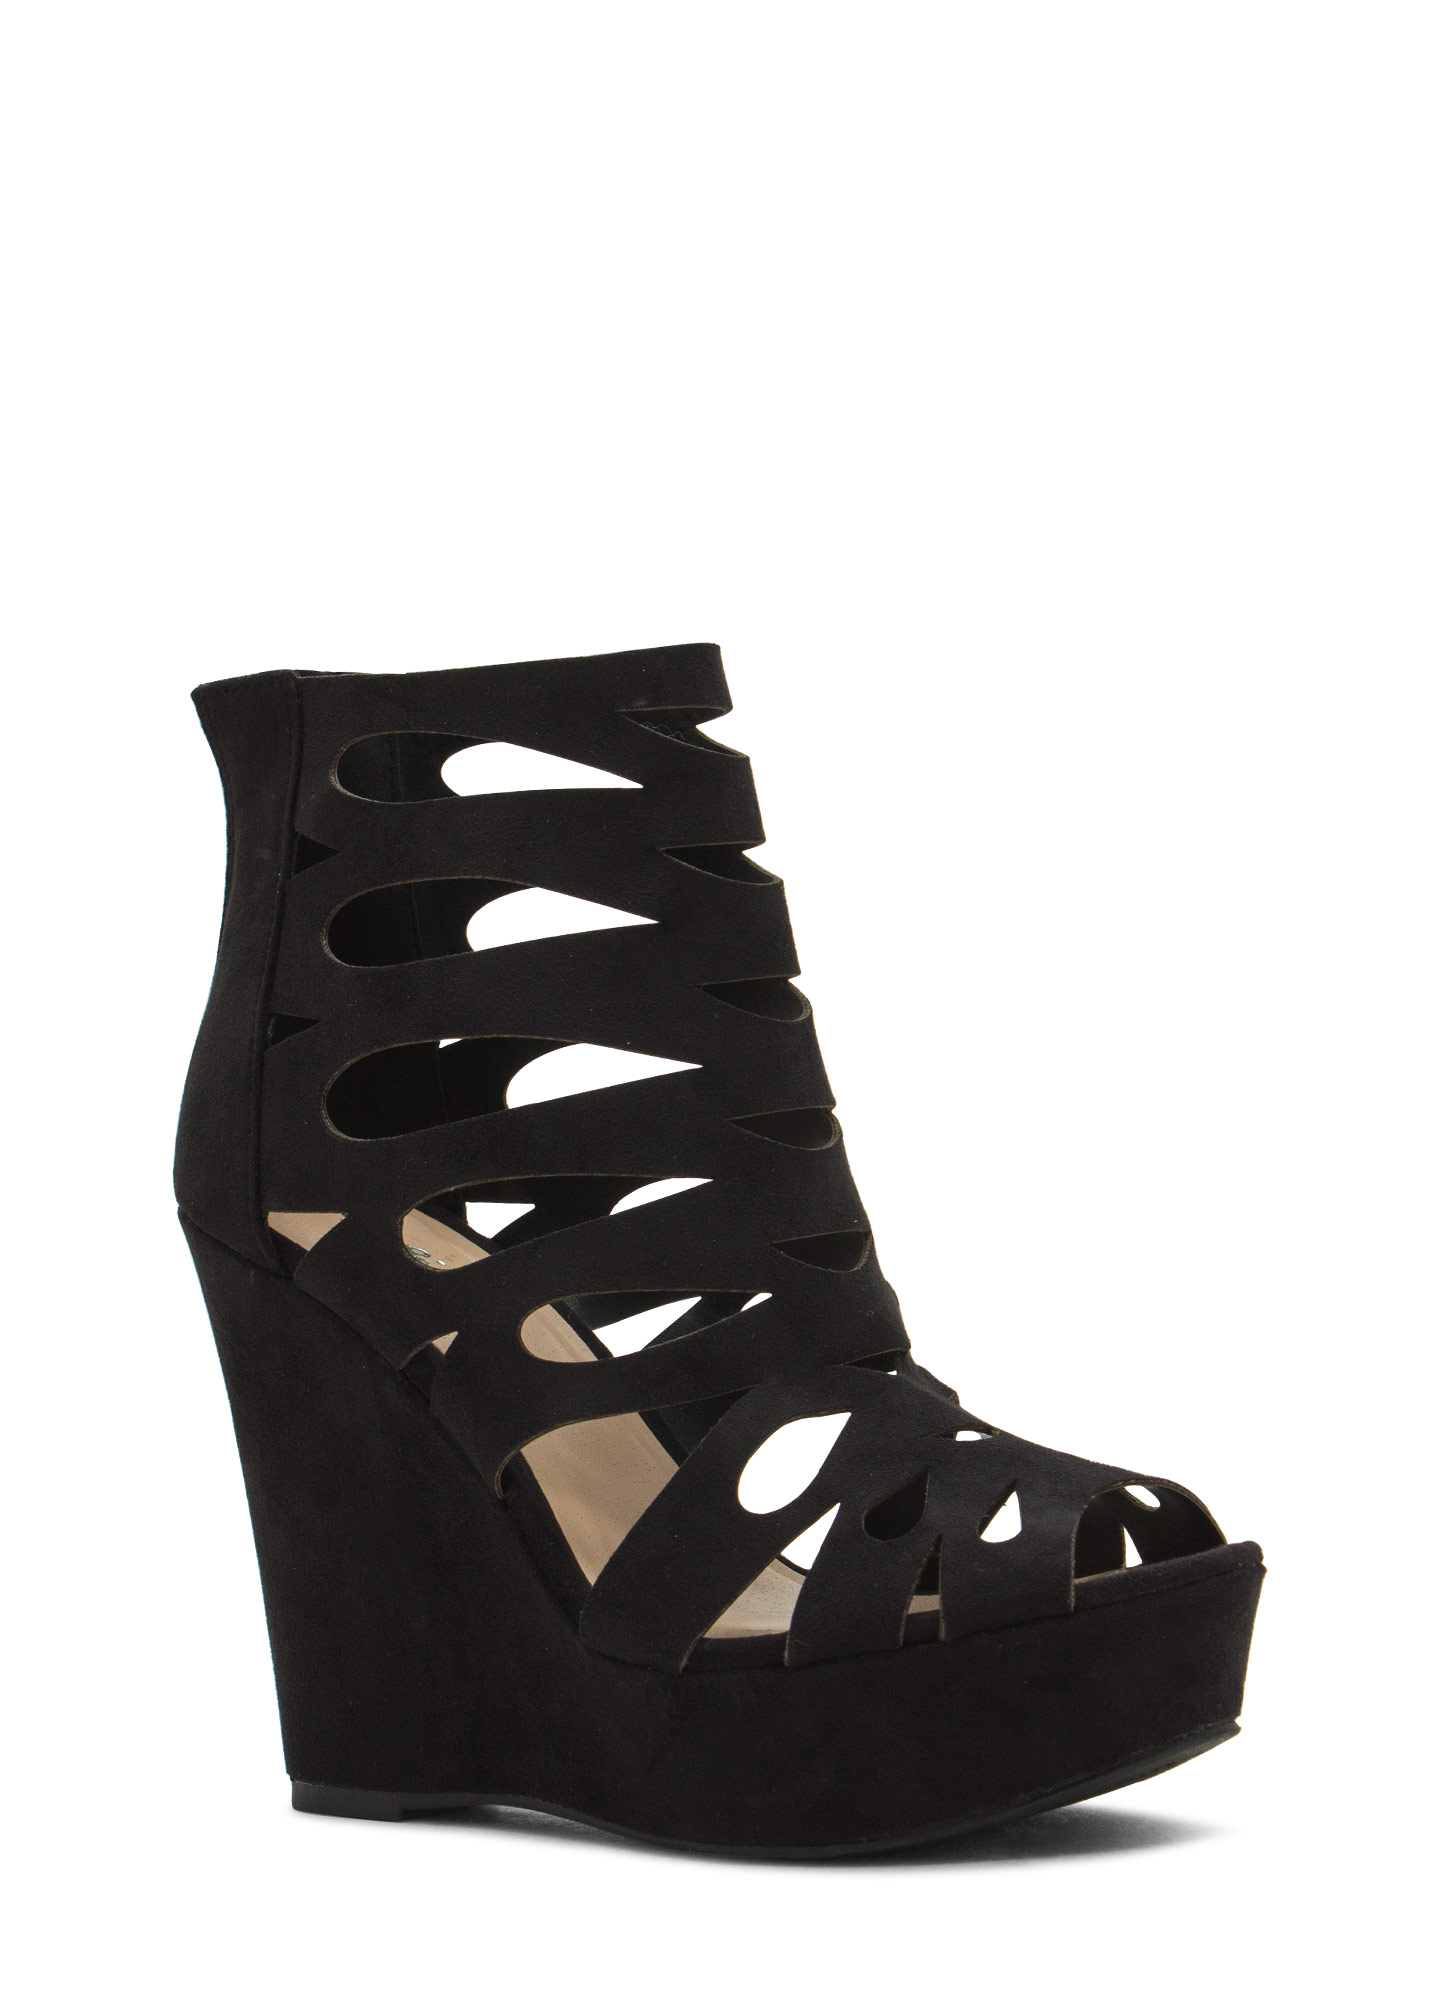 Teardrop Cut-Out Platform Wedges BLACK